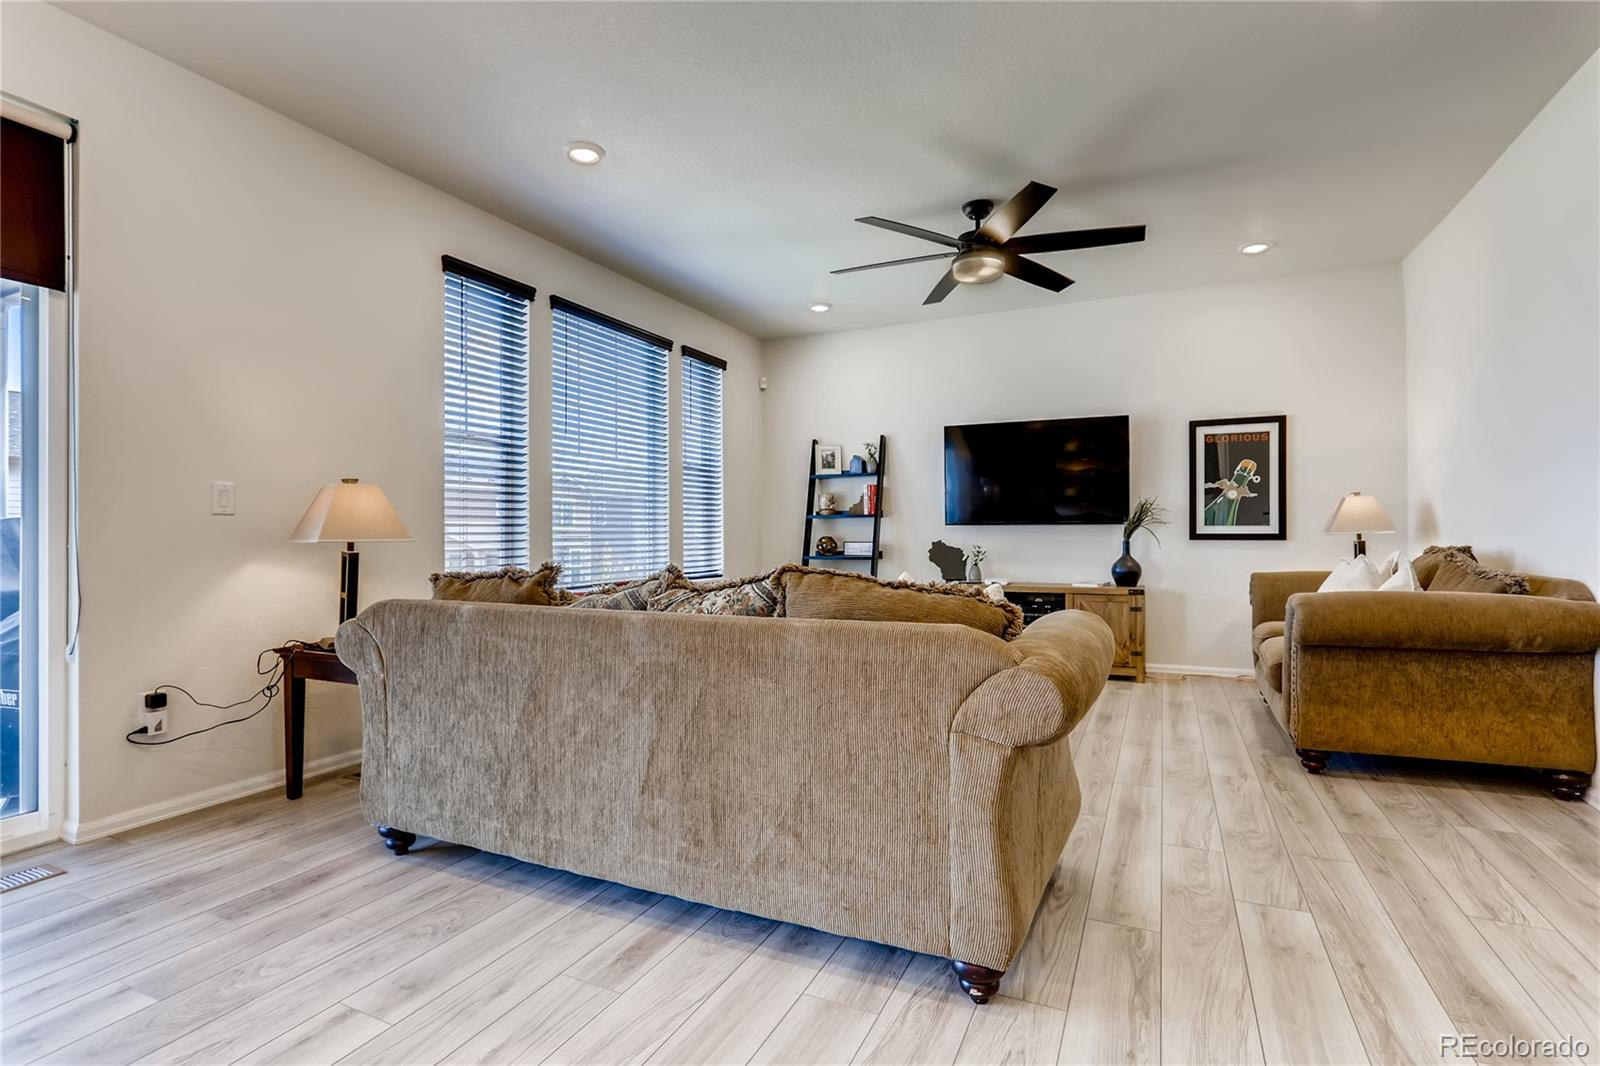 MLS# 2145354 - 6 - 26325 E Canal Place, Aurora, CO 80018